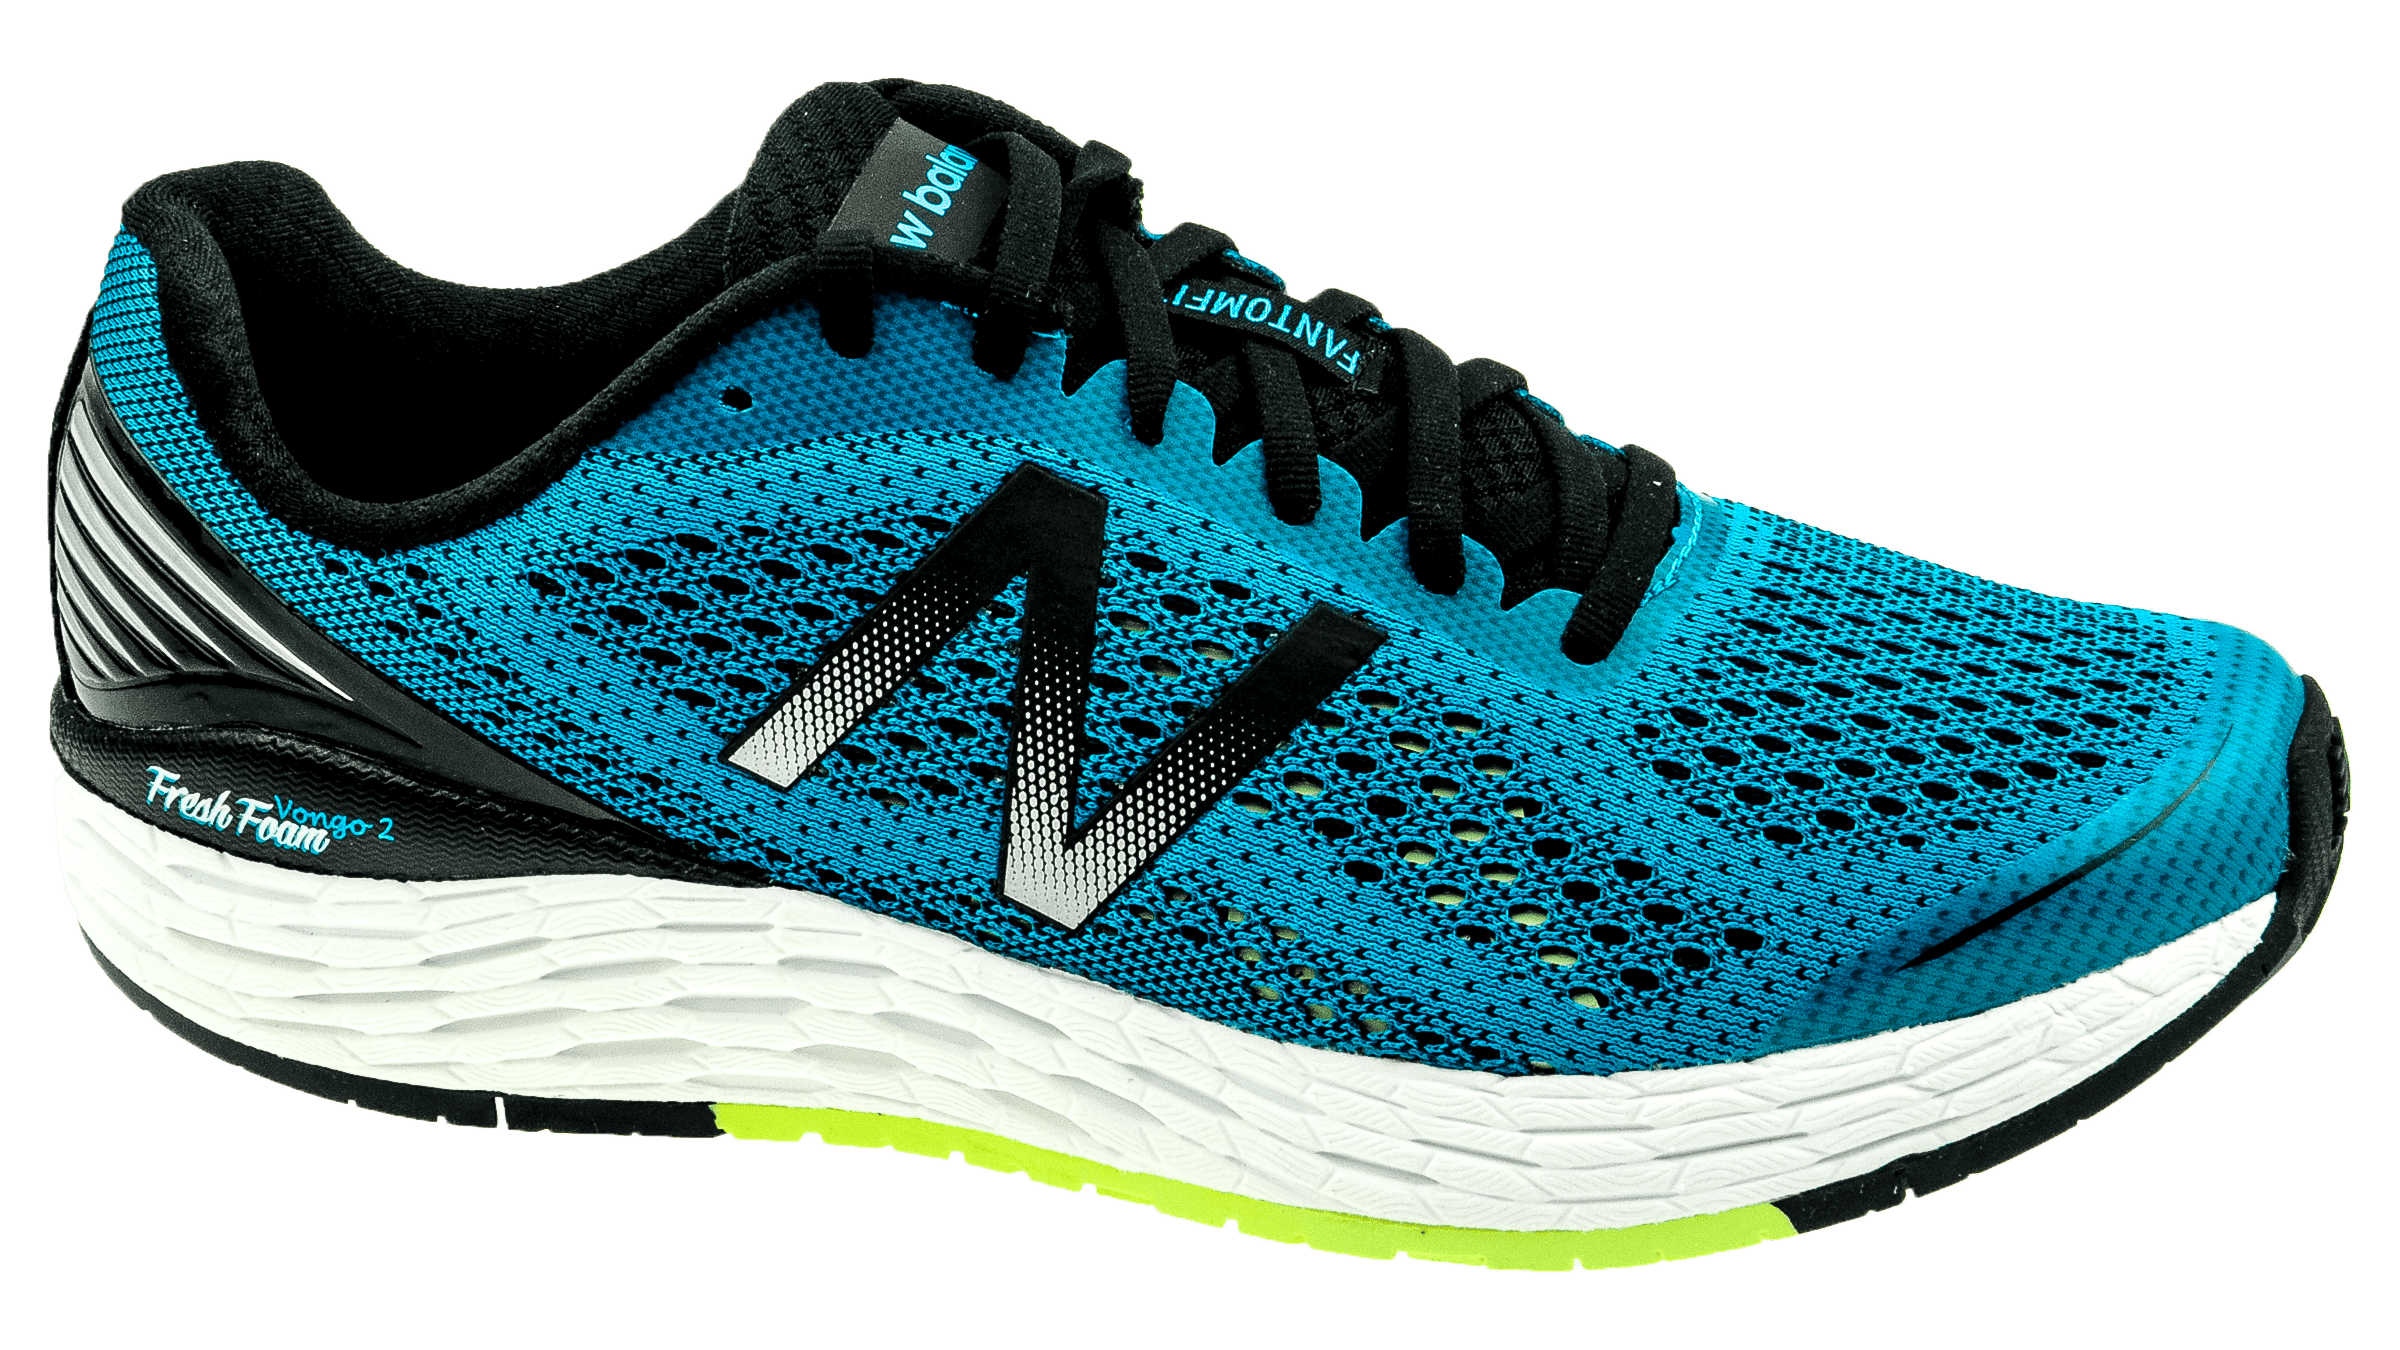 New Balance Fresh Foam Vongo 2 Maldives Blueblack